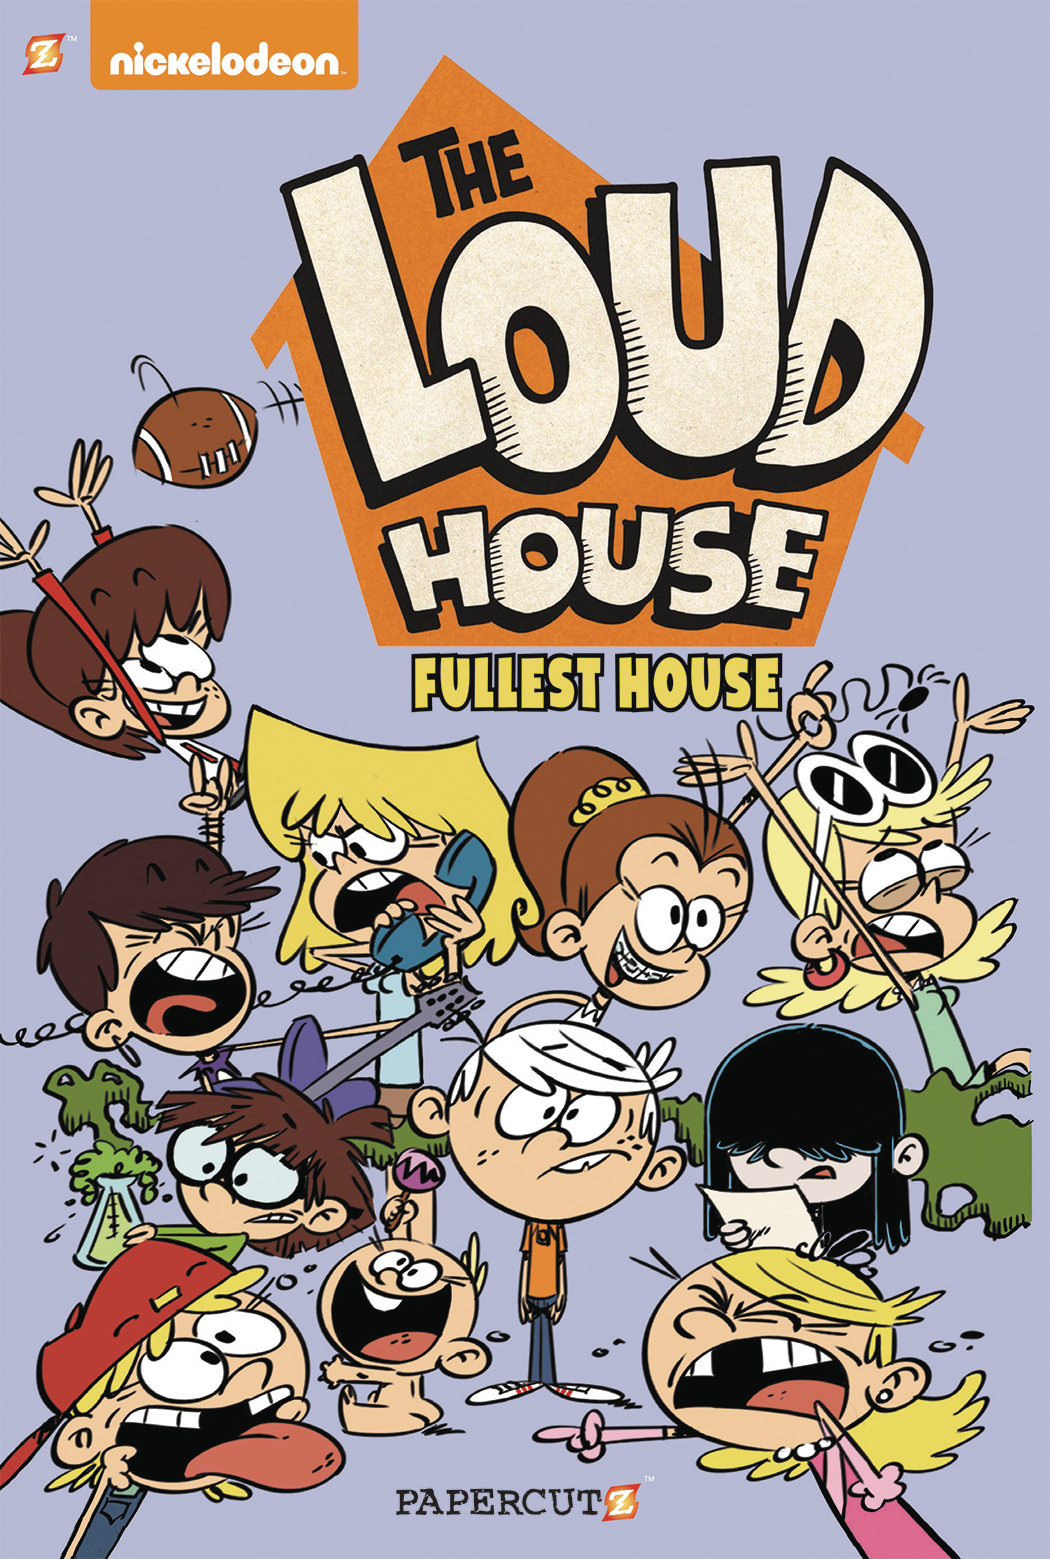 the loud house free comic book day